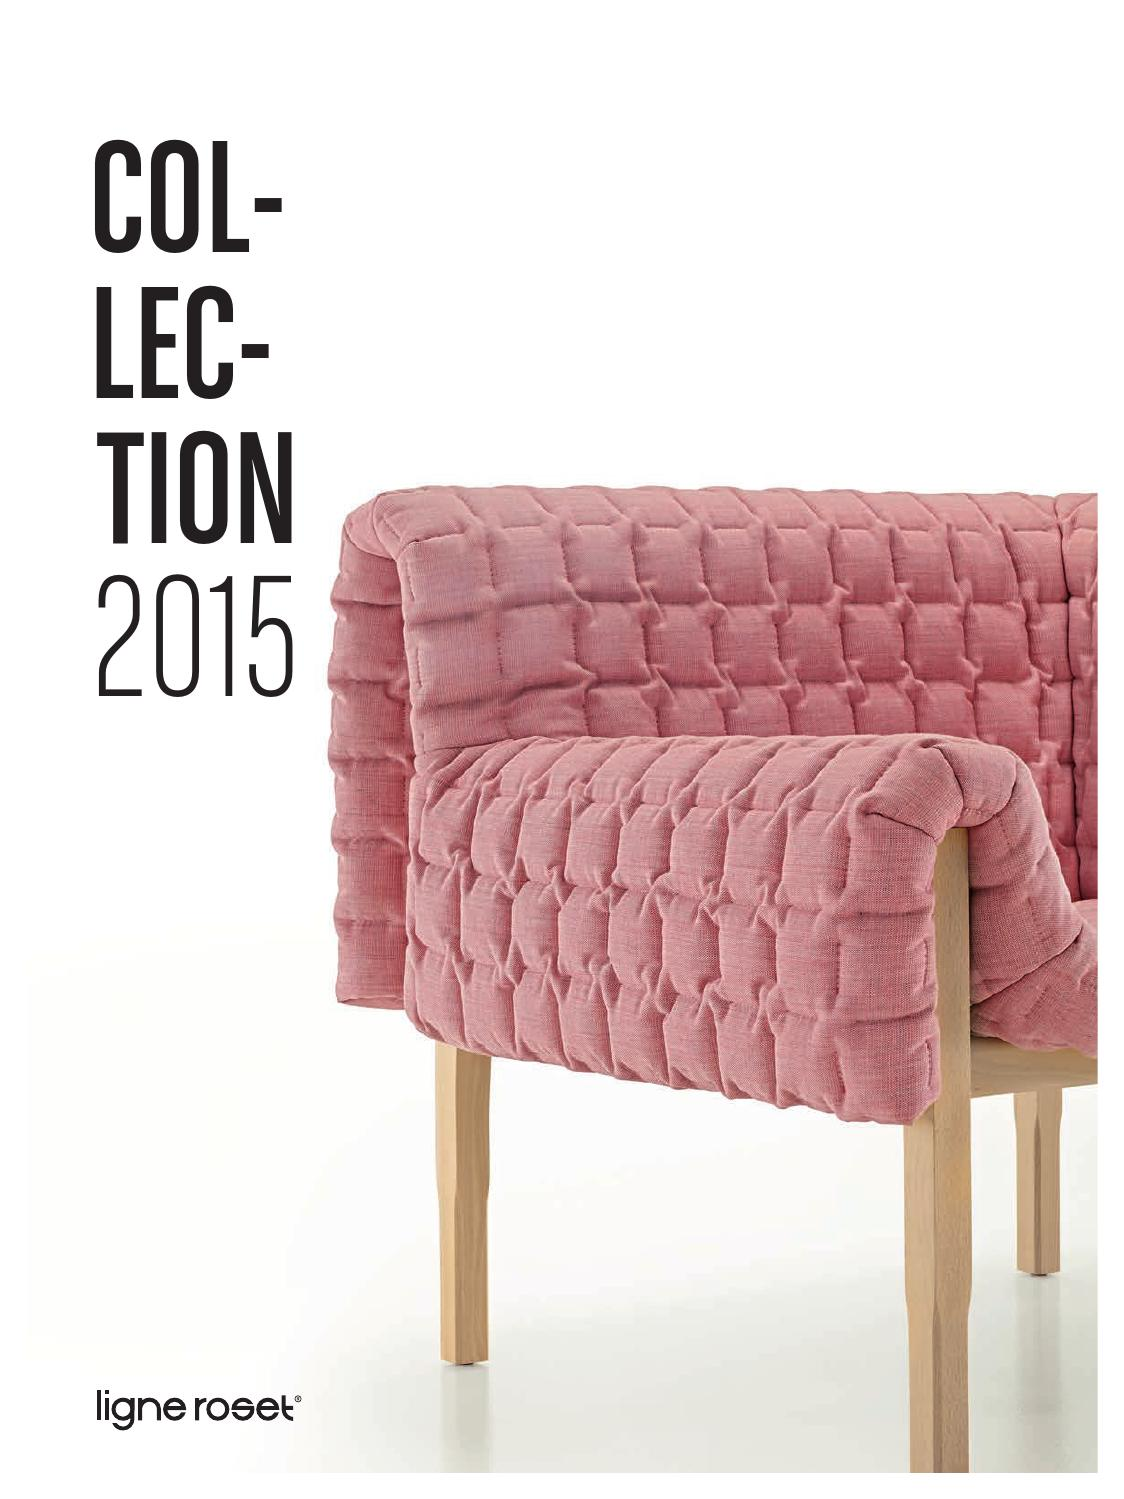 Ligne roset 2015 by zinc design issuu for Sofas modulares de tela